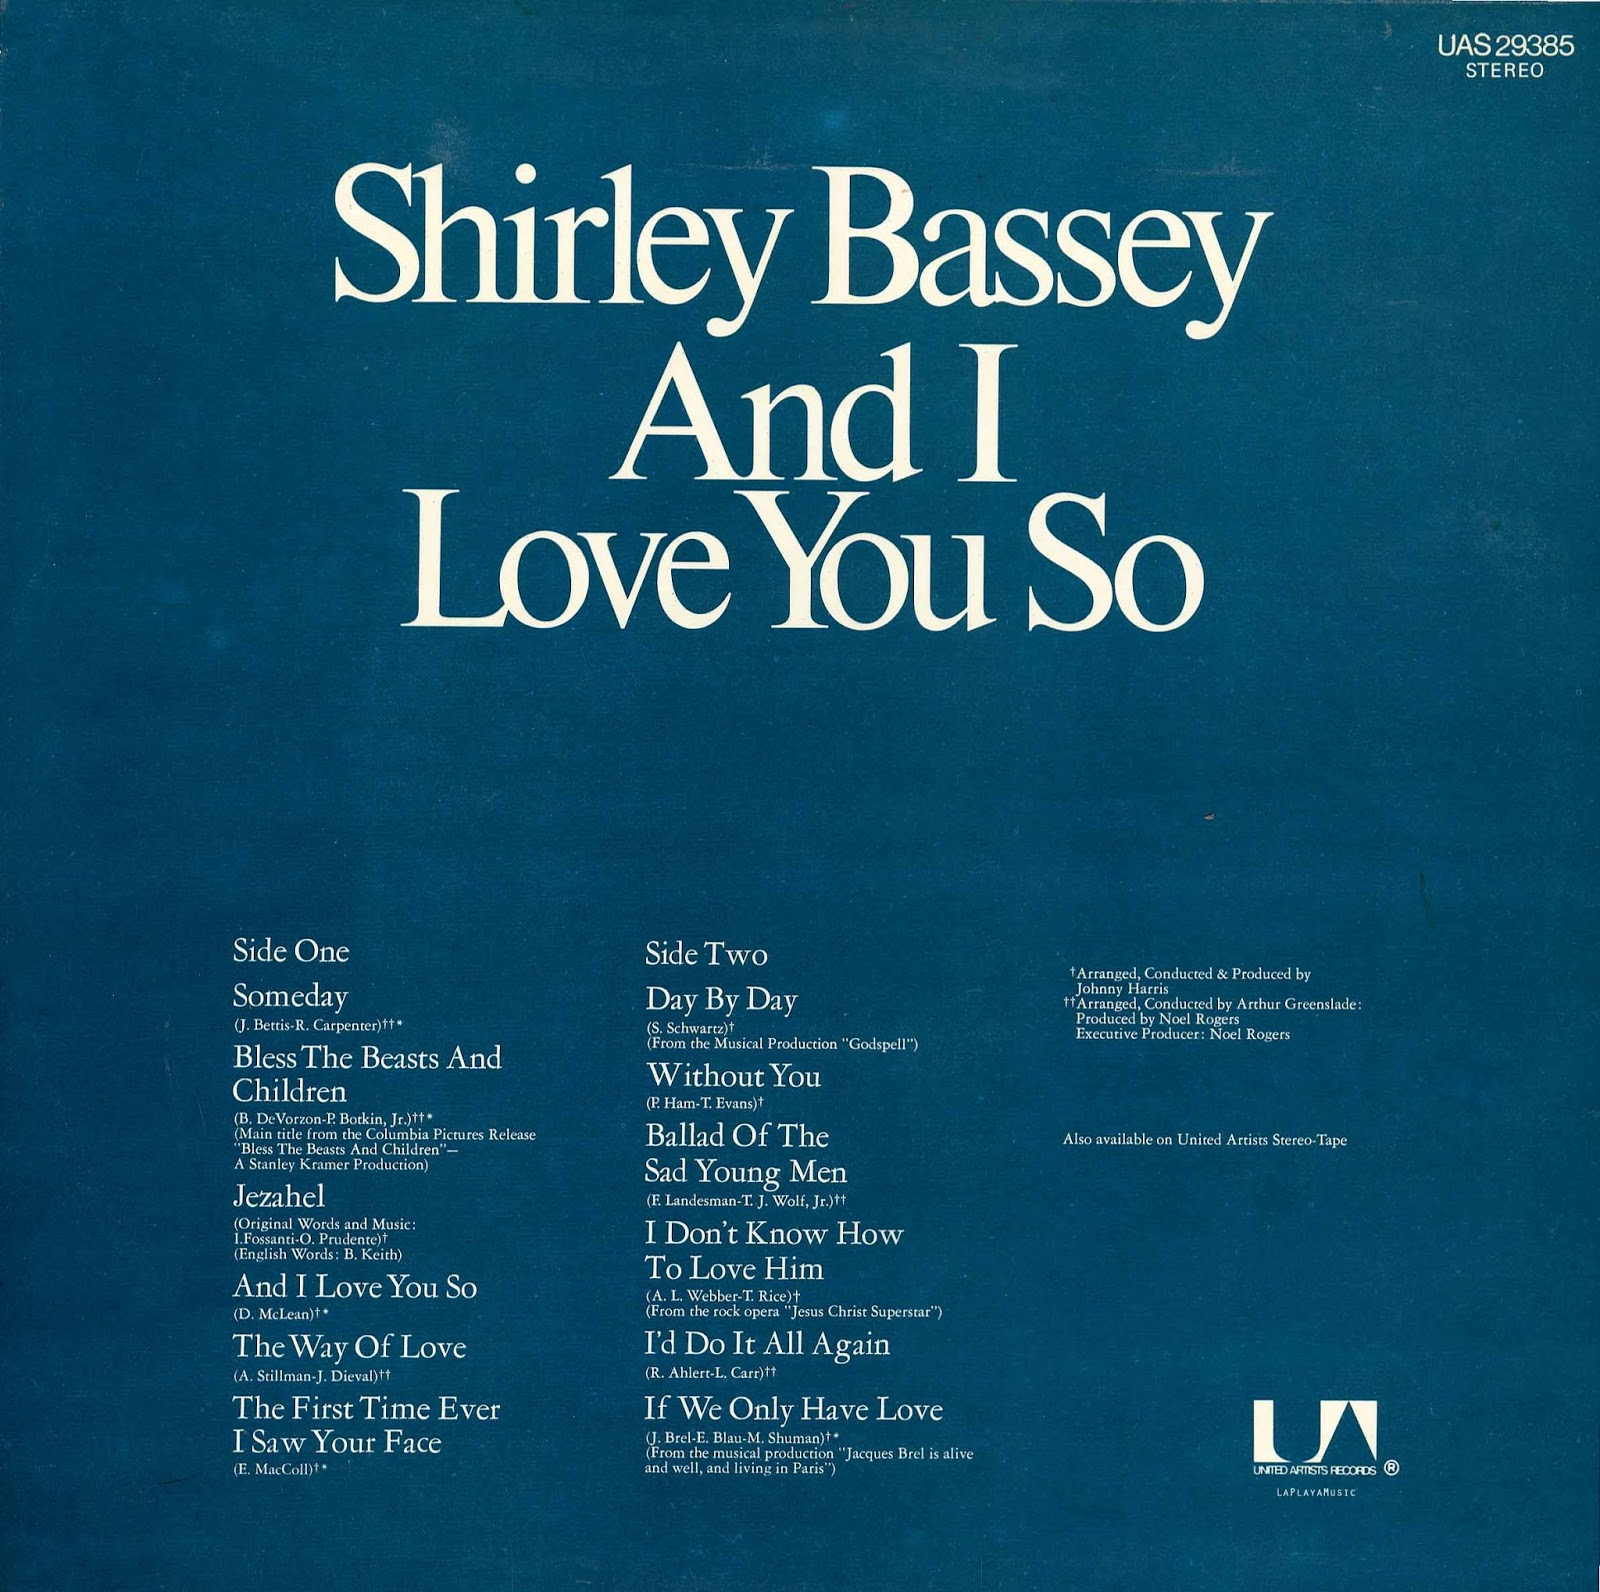 la playa music oldies shirley bassey and i love you so 1973